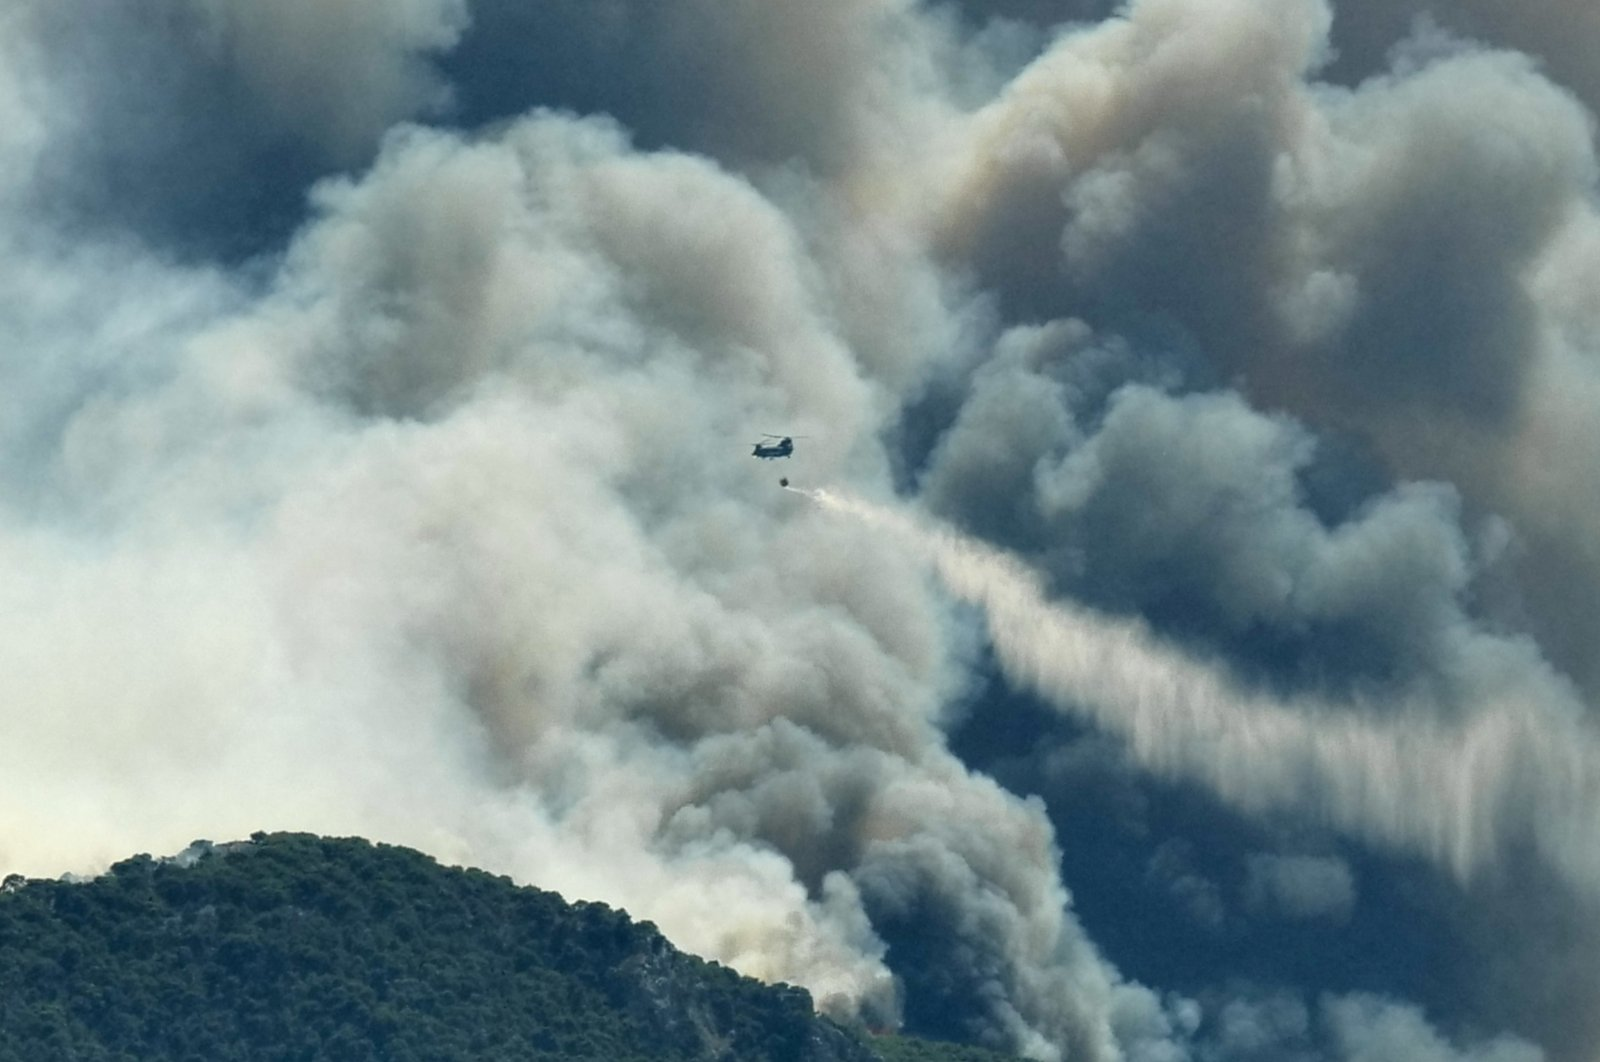 A Chinook helicopter makes a water drop as a wildfire burns near the village of Kechries, Greece, July 22, 2020. (Reuters Photo)